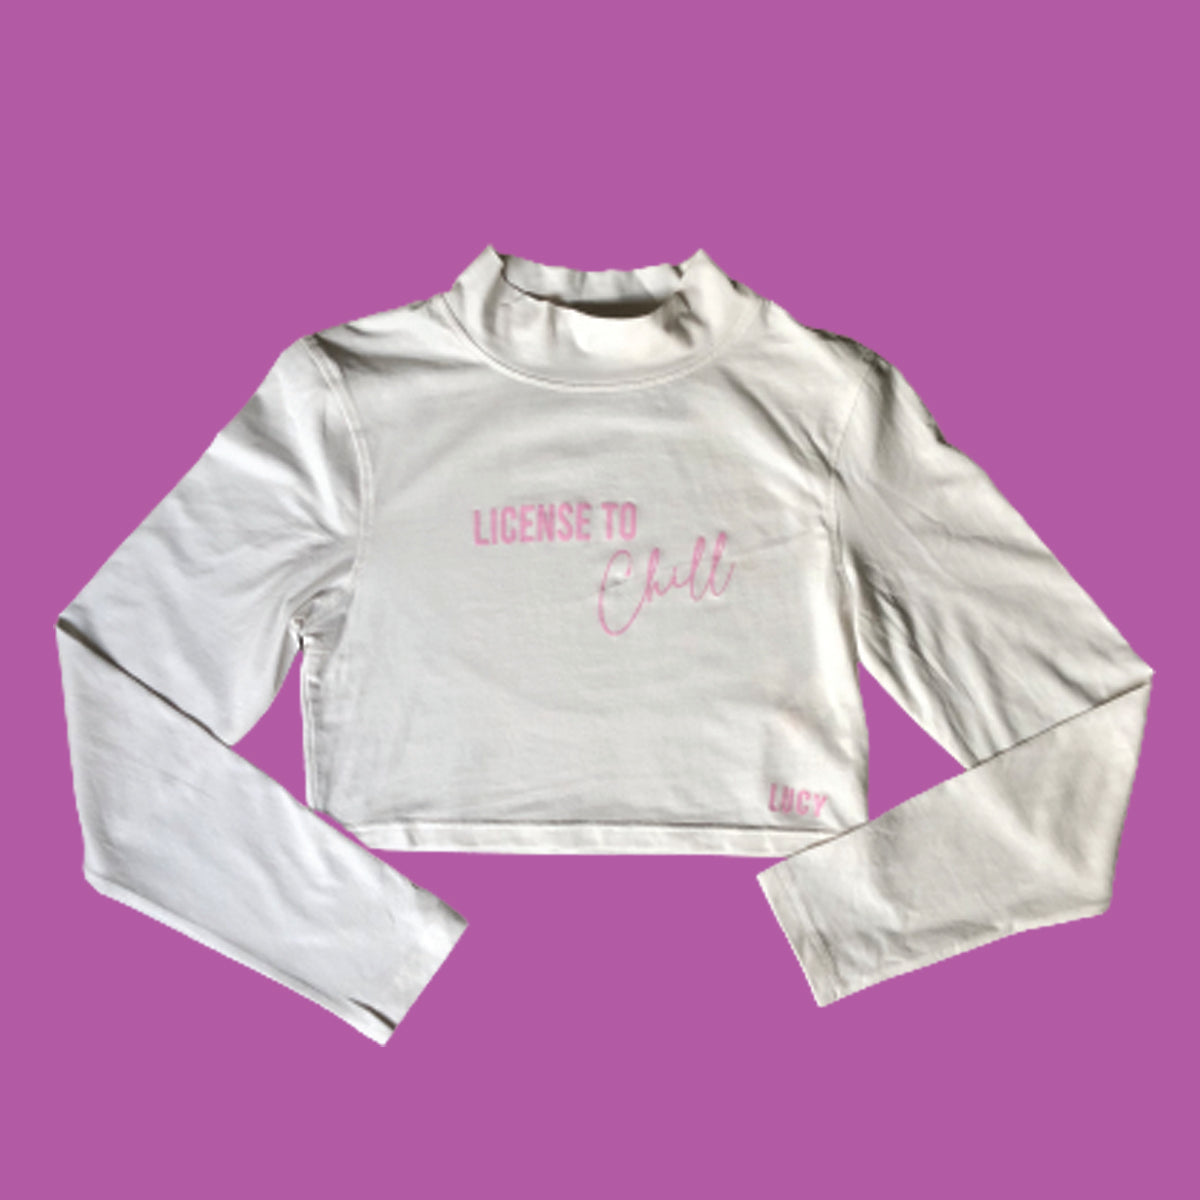 Lucy License to Chill Crop Top